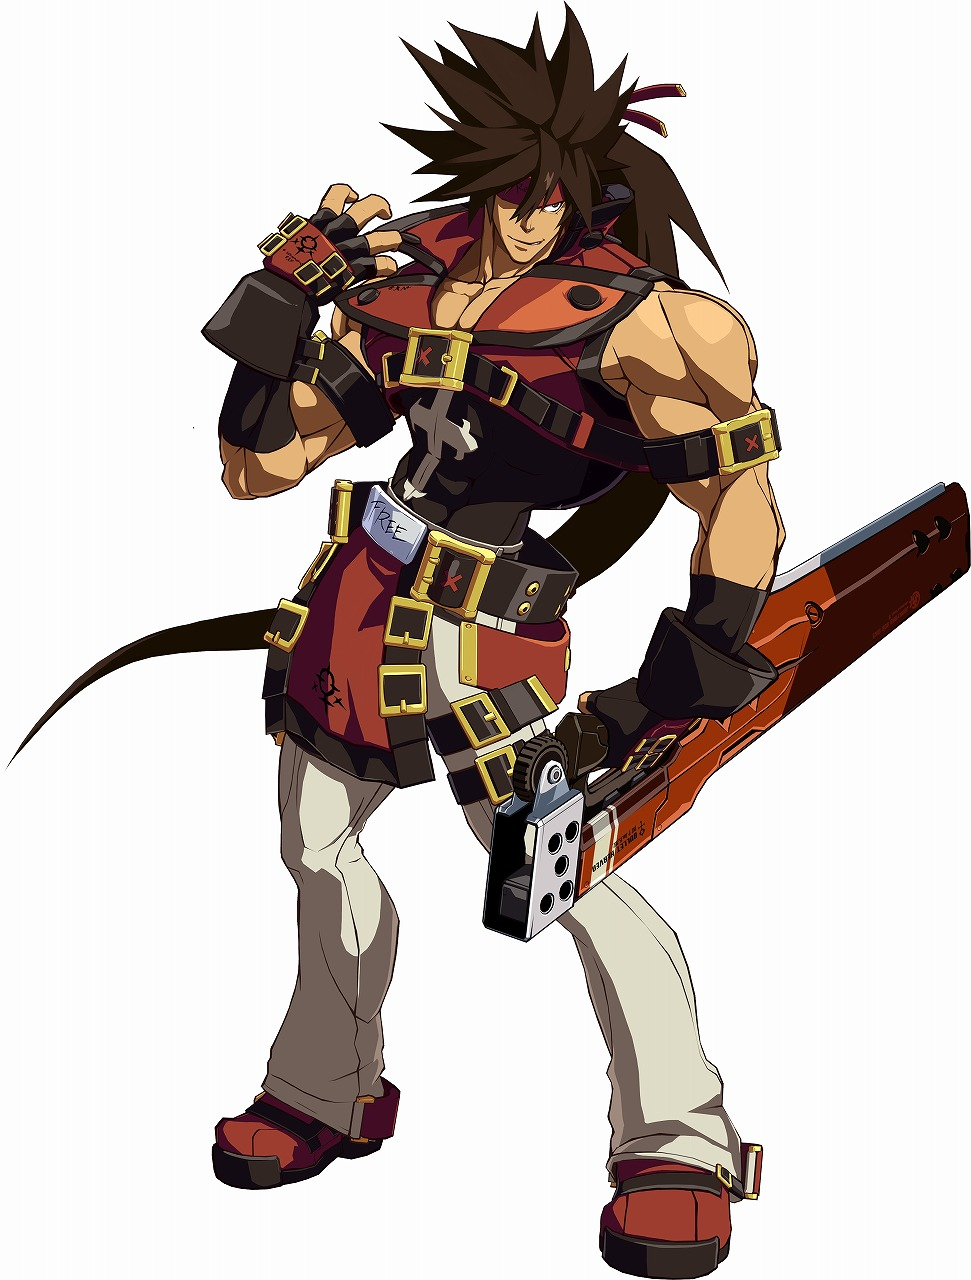 Guilty Gear Xrd: Sign gets new screens ahead of Japanese ...